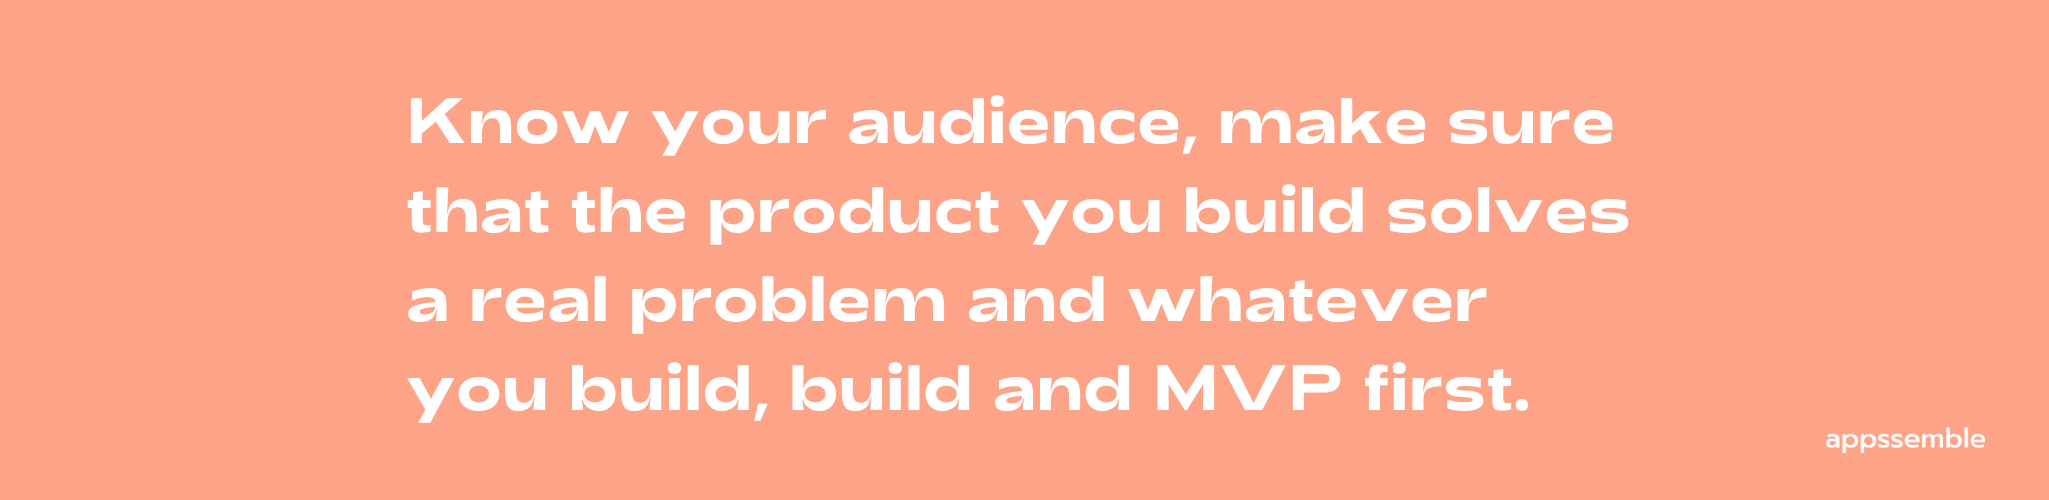 how to build a mobile mvp